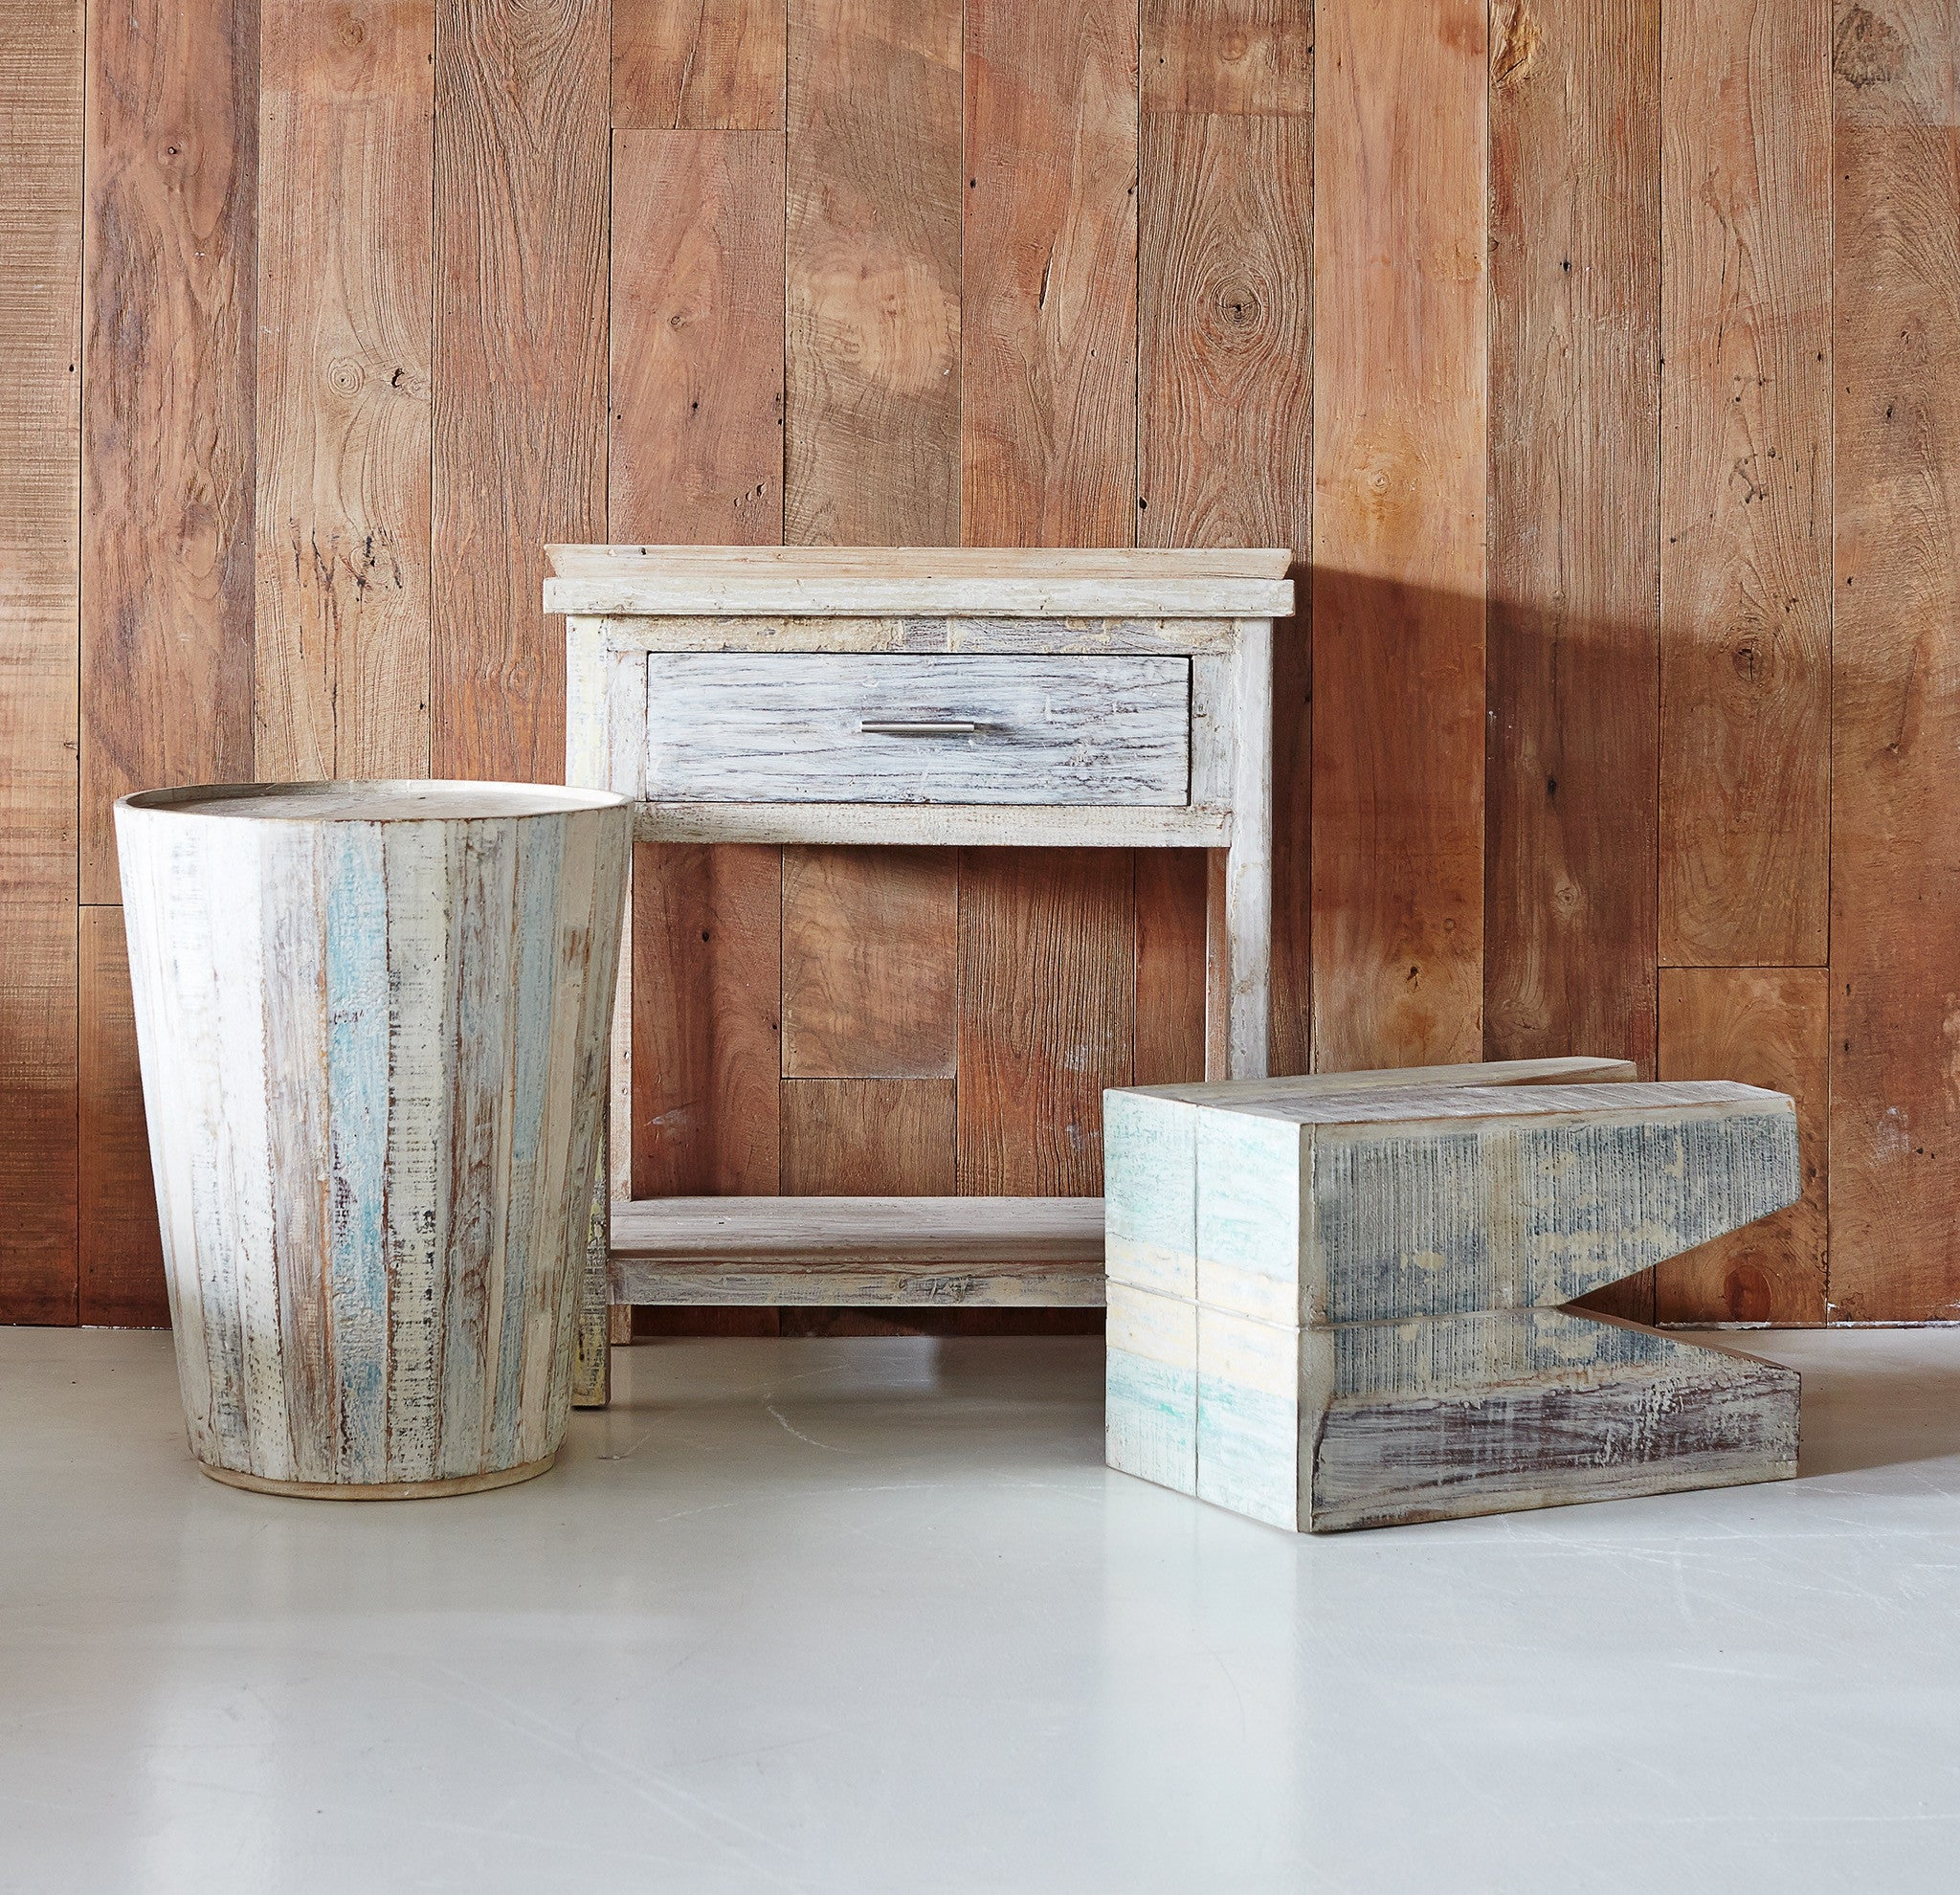 Indian Stool Recycled-Nomad India-Originals Furniture - 3